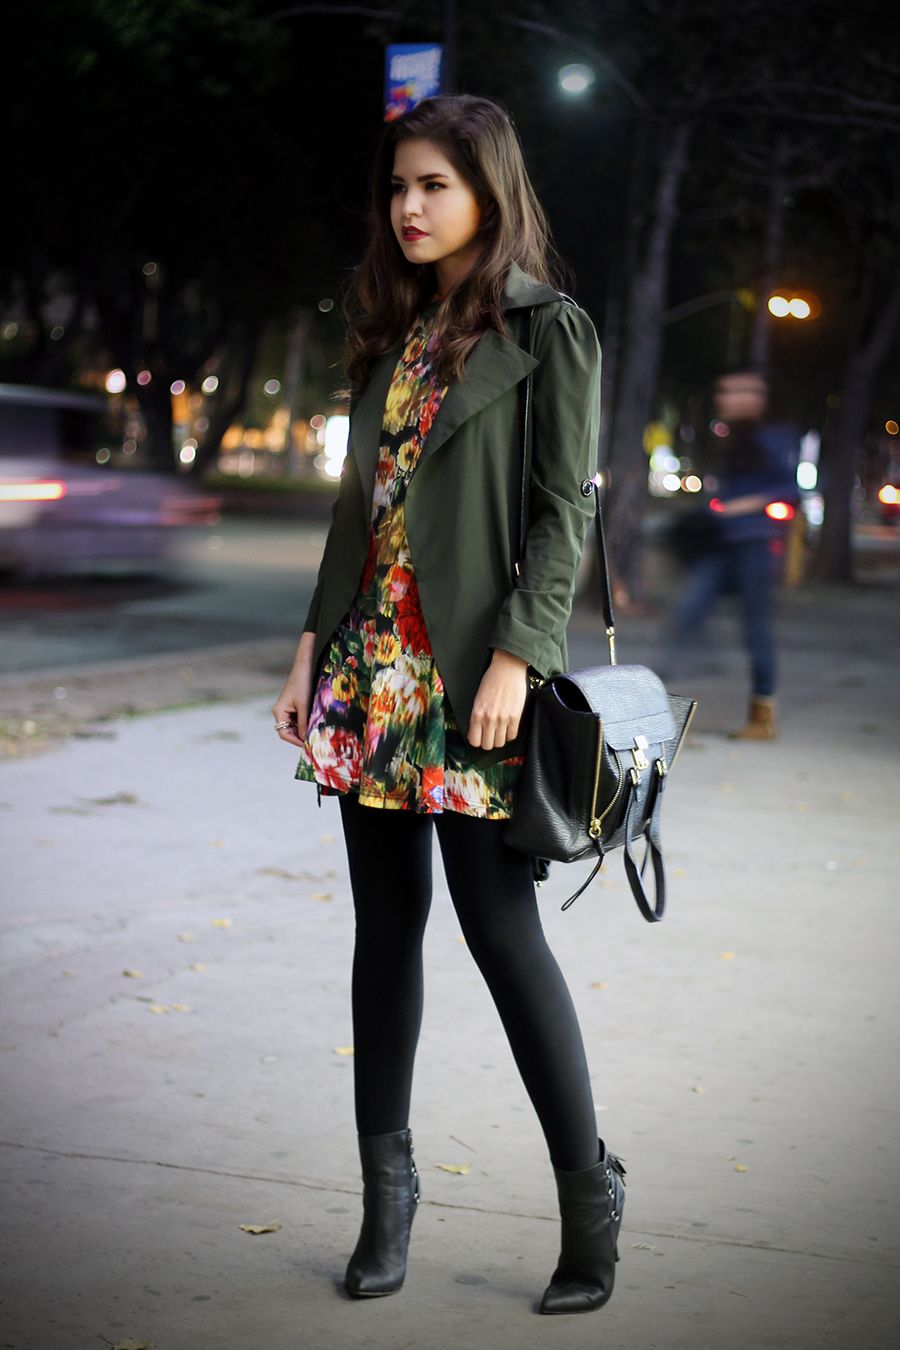 a51a99ebd6 25 Reasons to Forget Seasonal Rules and Wear Florals During Winter ...